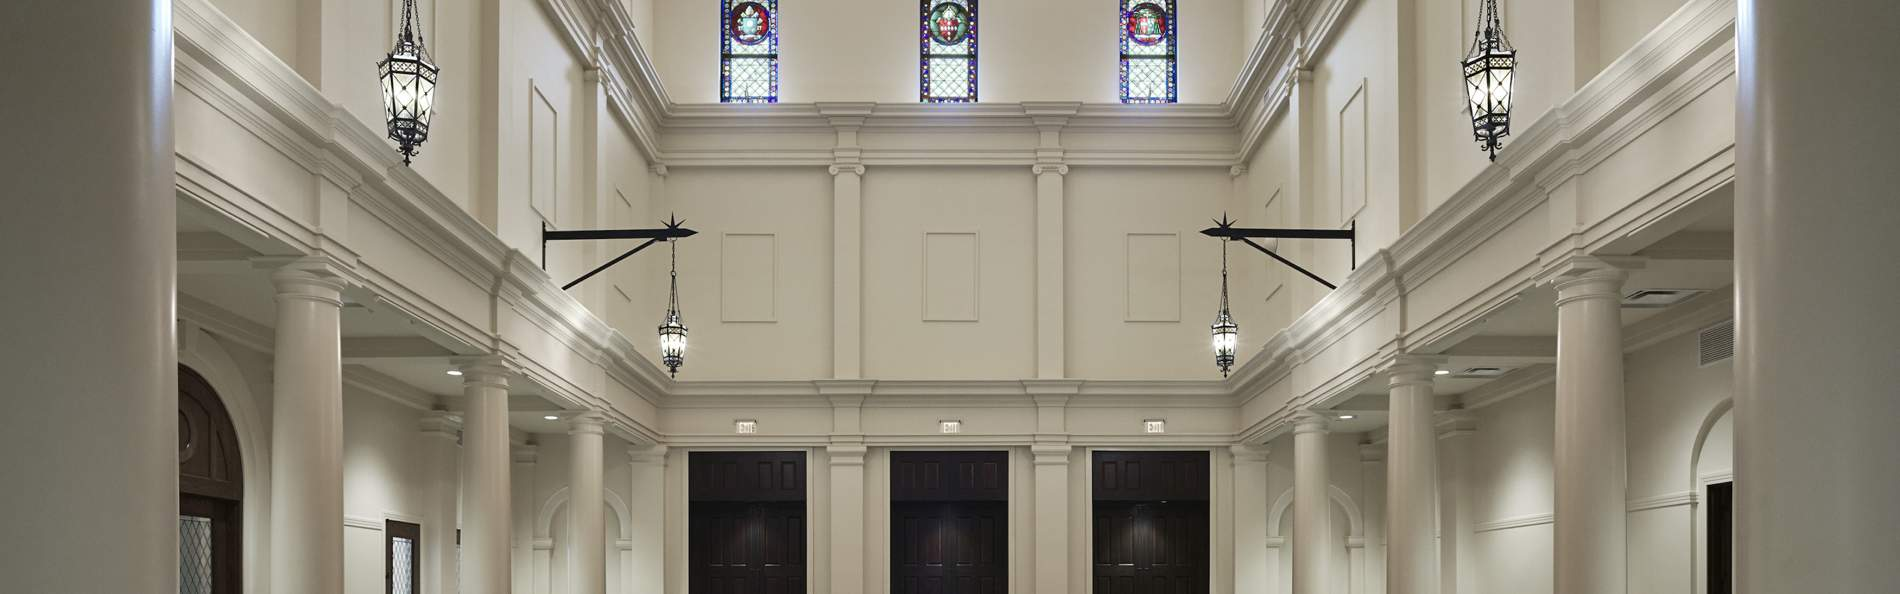 Holy Name of Jesus Cathedral; O'Brien & Keane Architects